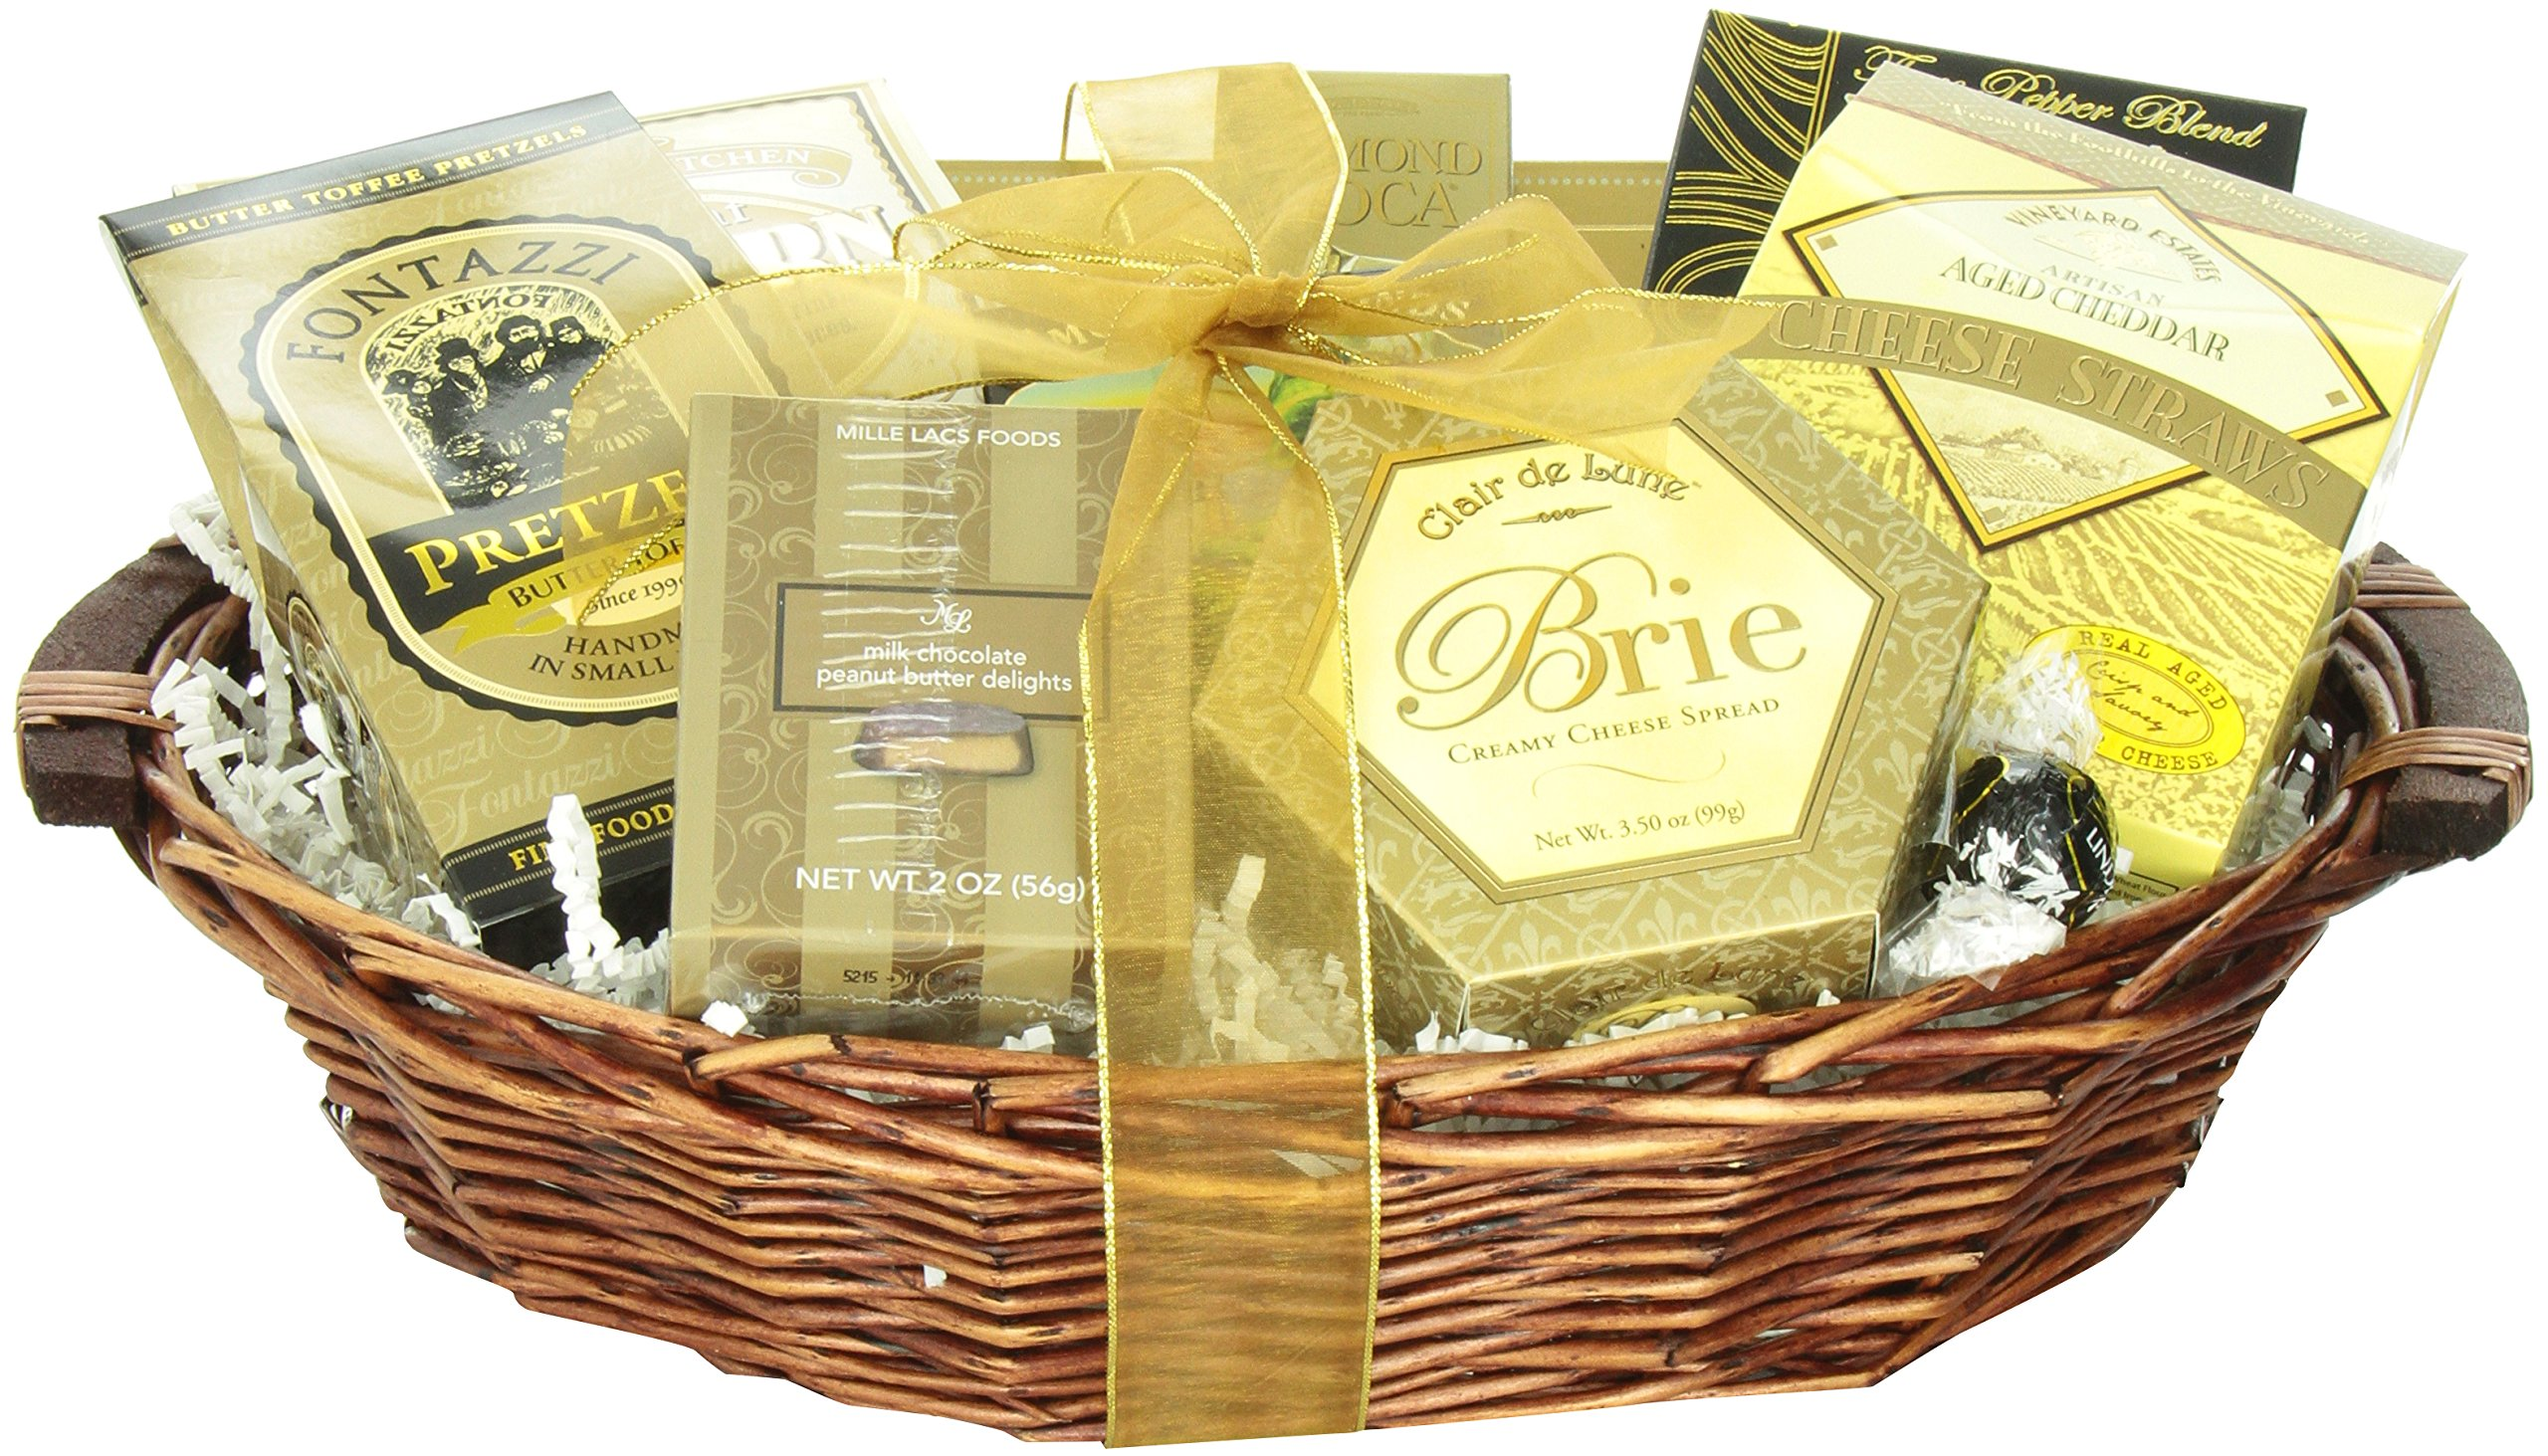 CDM product GreatArrivals Gift Baskets New Year's Grand Gourmet: Gourmet New Year's Gift Basket, 4.08 Kg big image